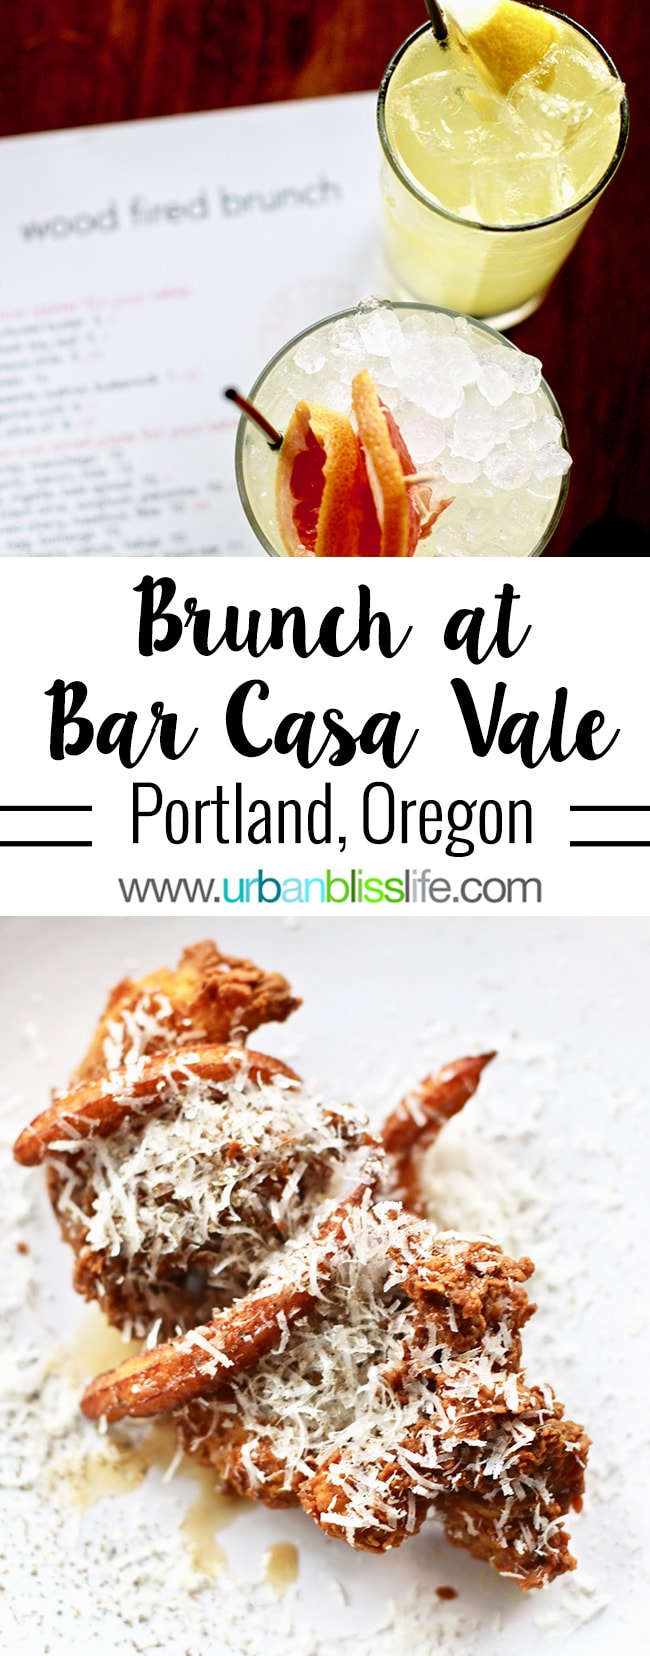 Bar Casa Vale Brunch in Portland, Oregon